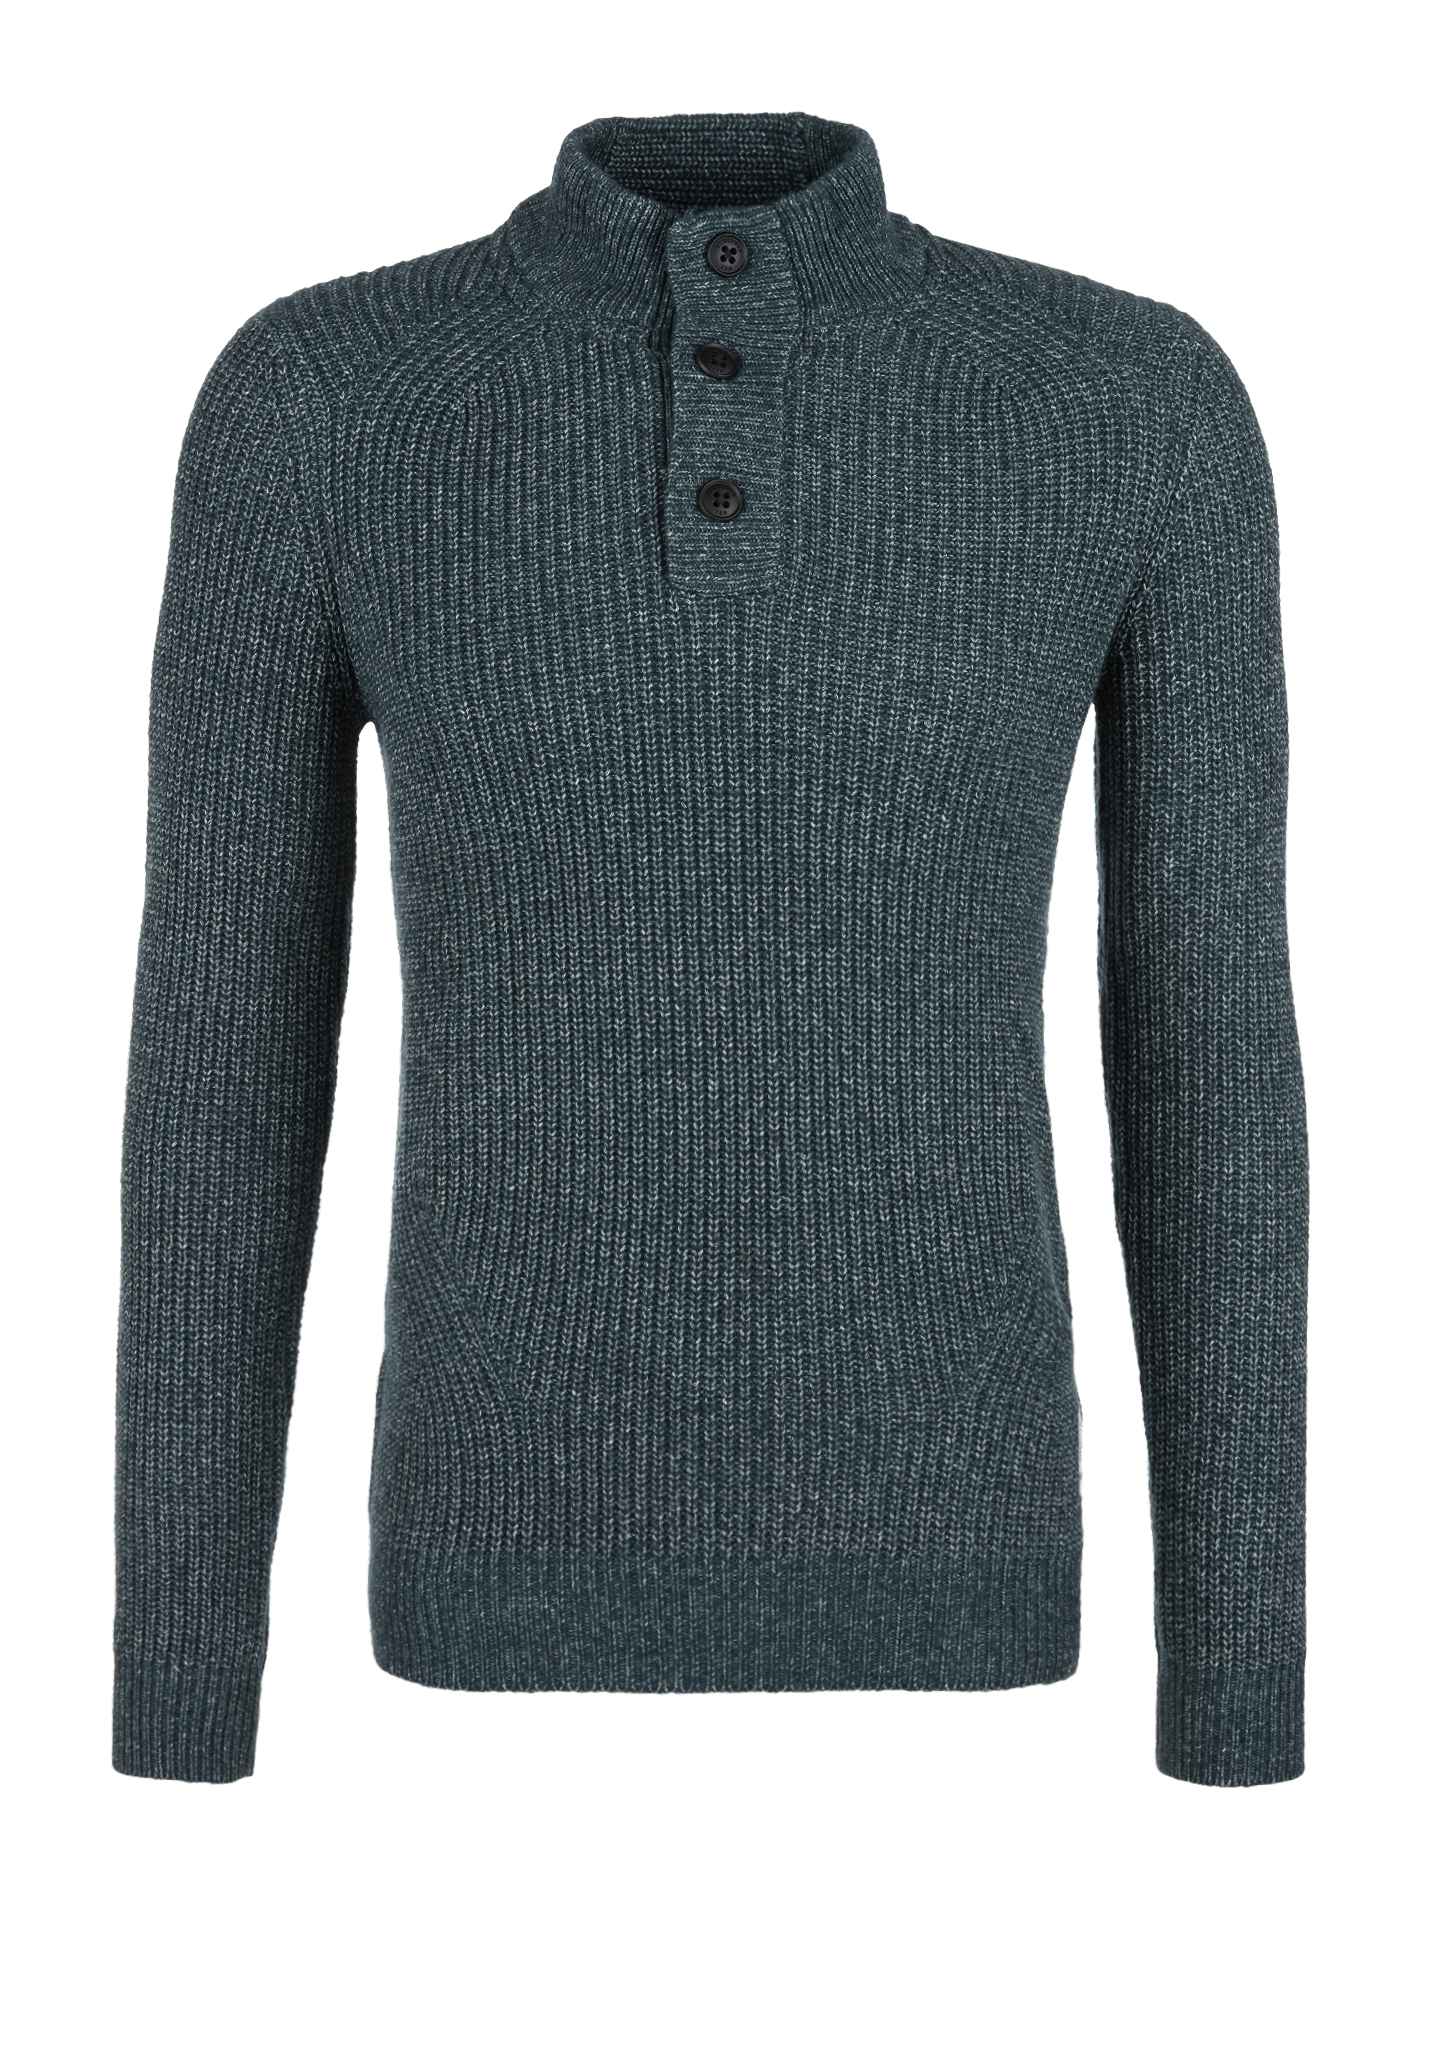 Troyer | Bekleidung > Pullover > Troyer | s.Oliver